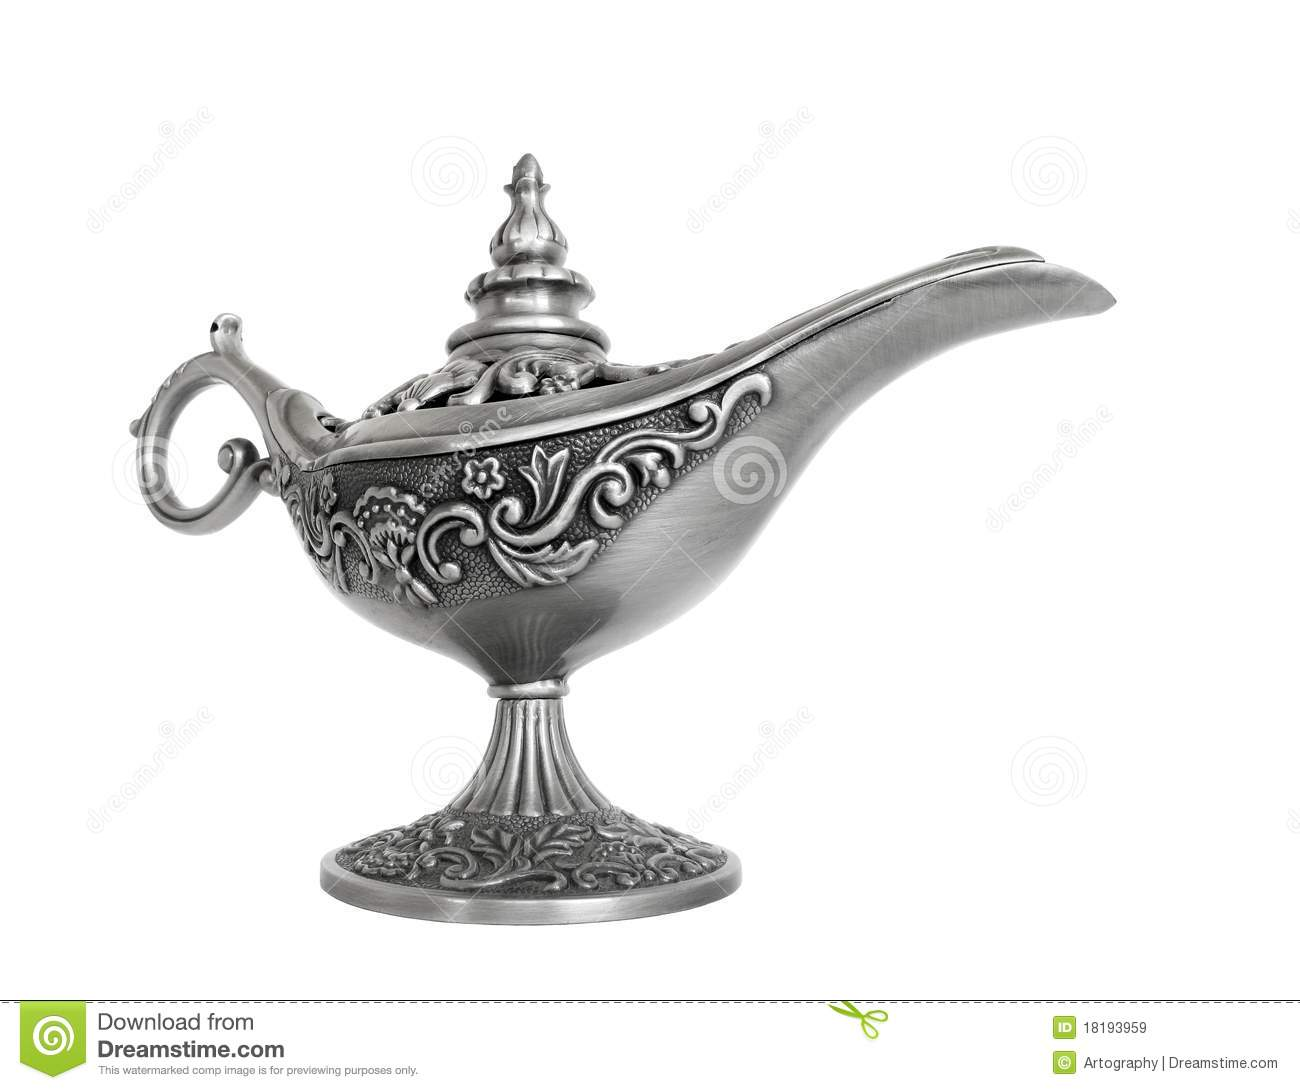 Genie lamp stock photos pictures royalty free genie - Royalty Free Stock Photo Download Genie Lamp